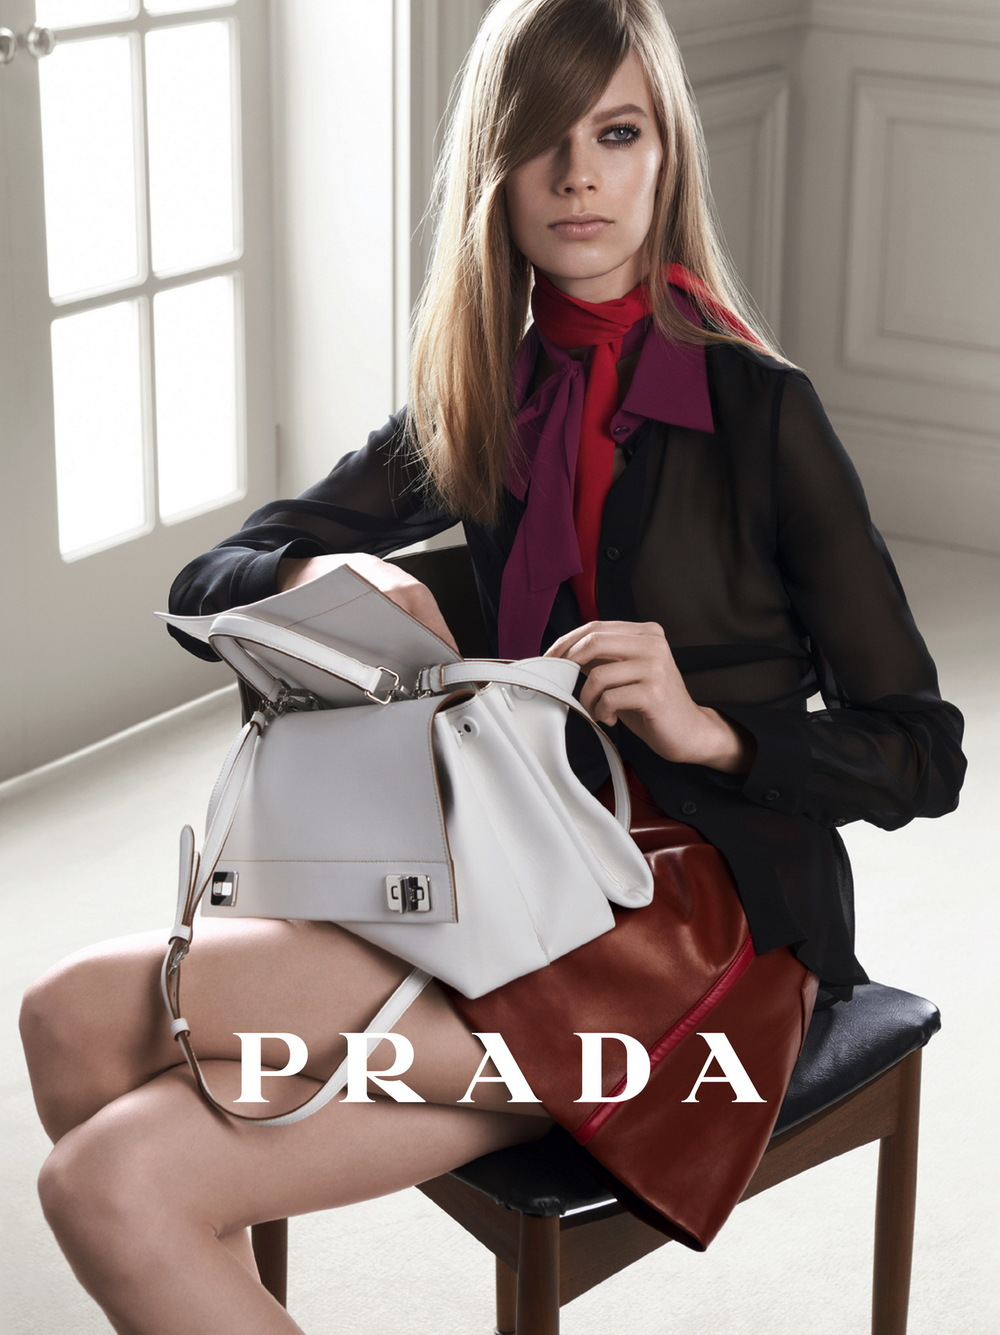 Prada 2014 April Adv Camp_02.jpg